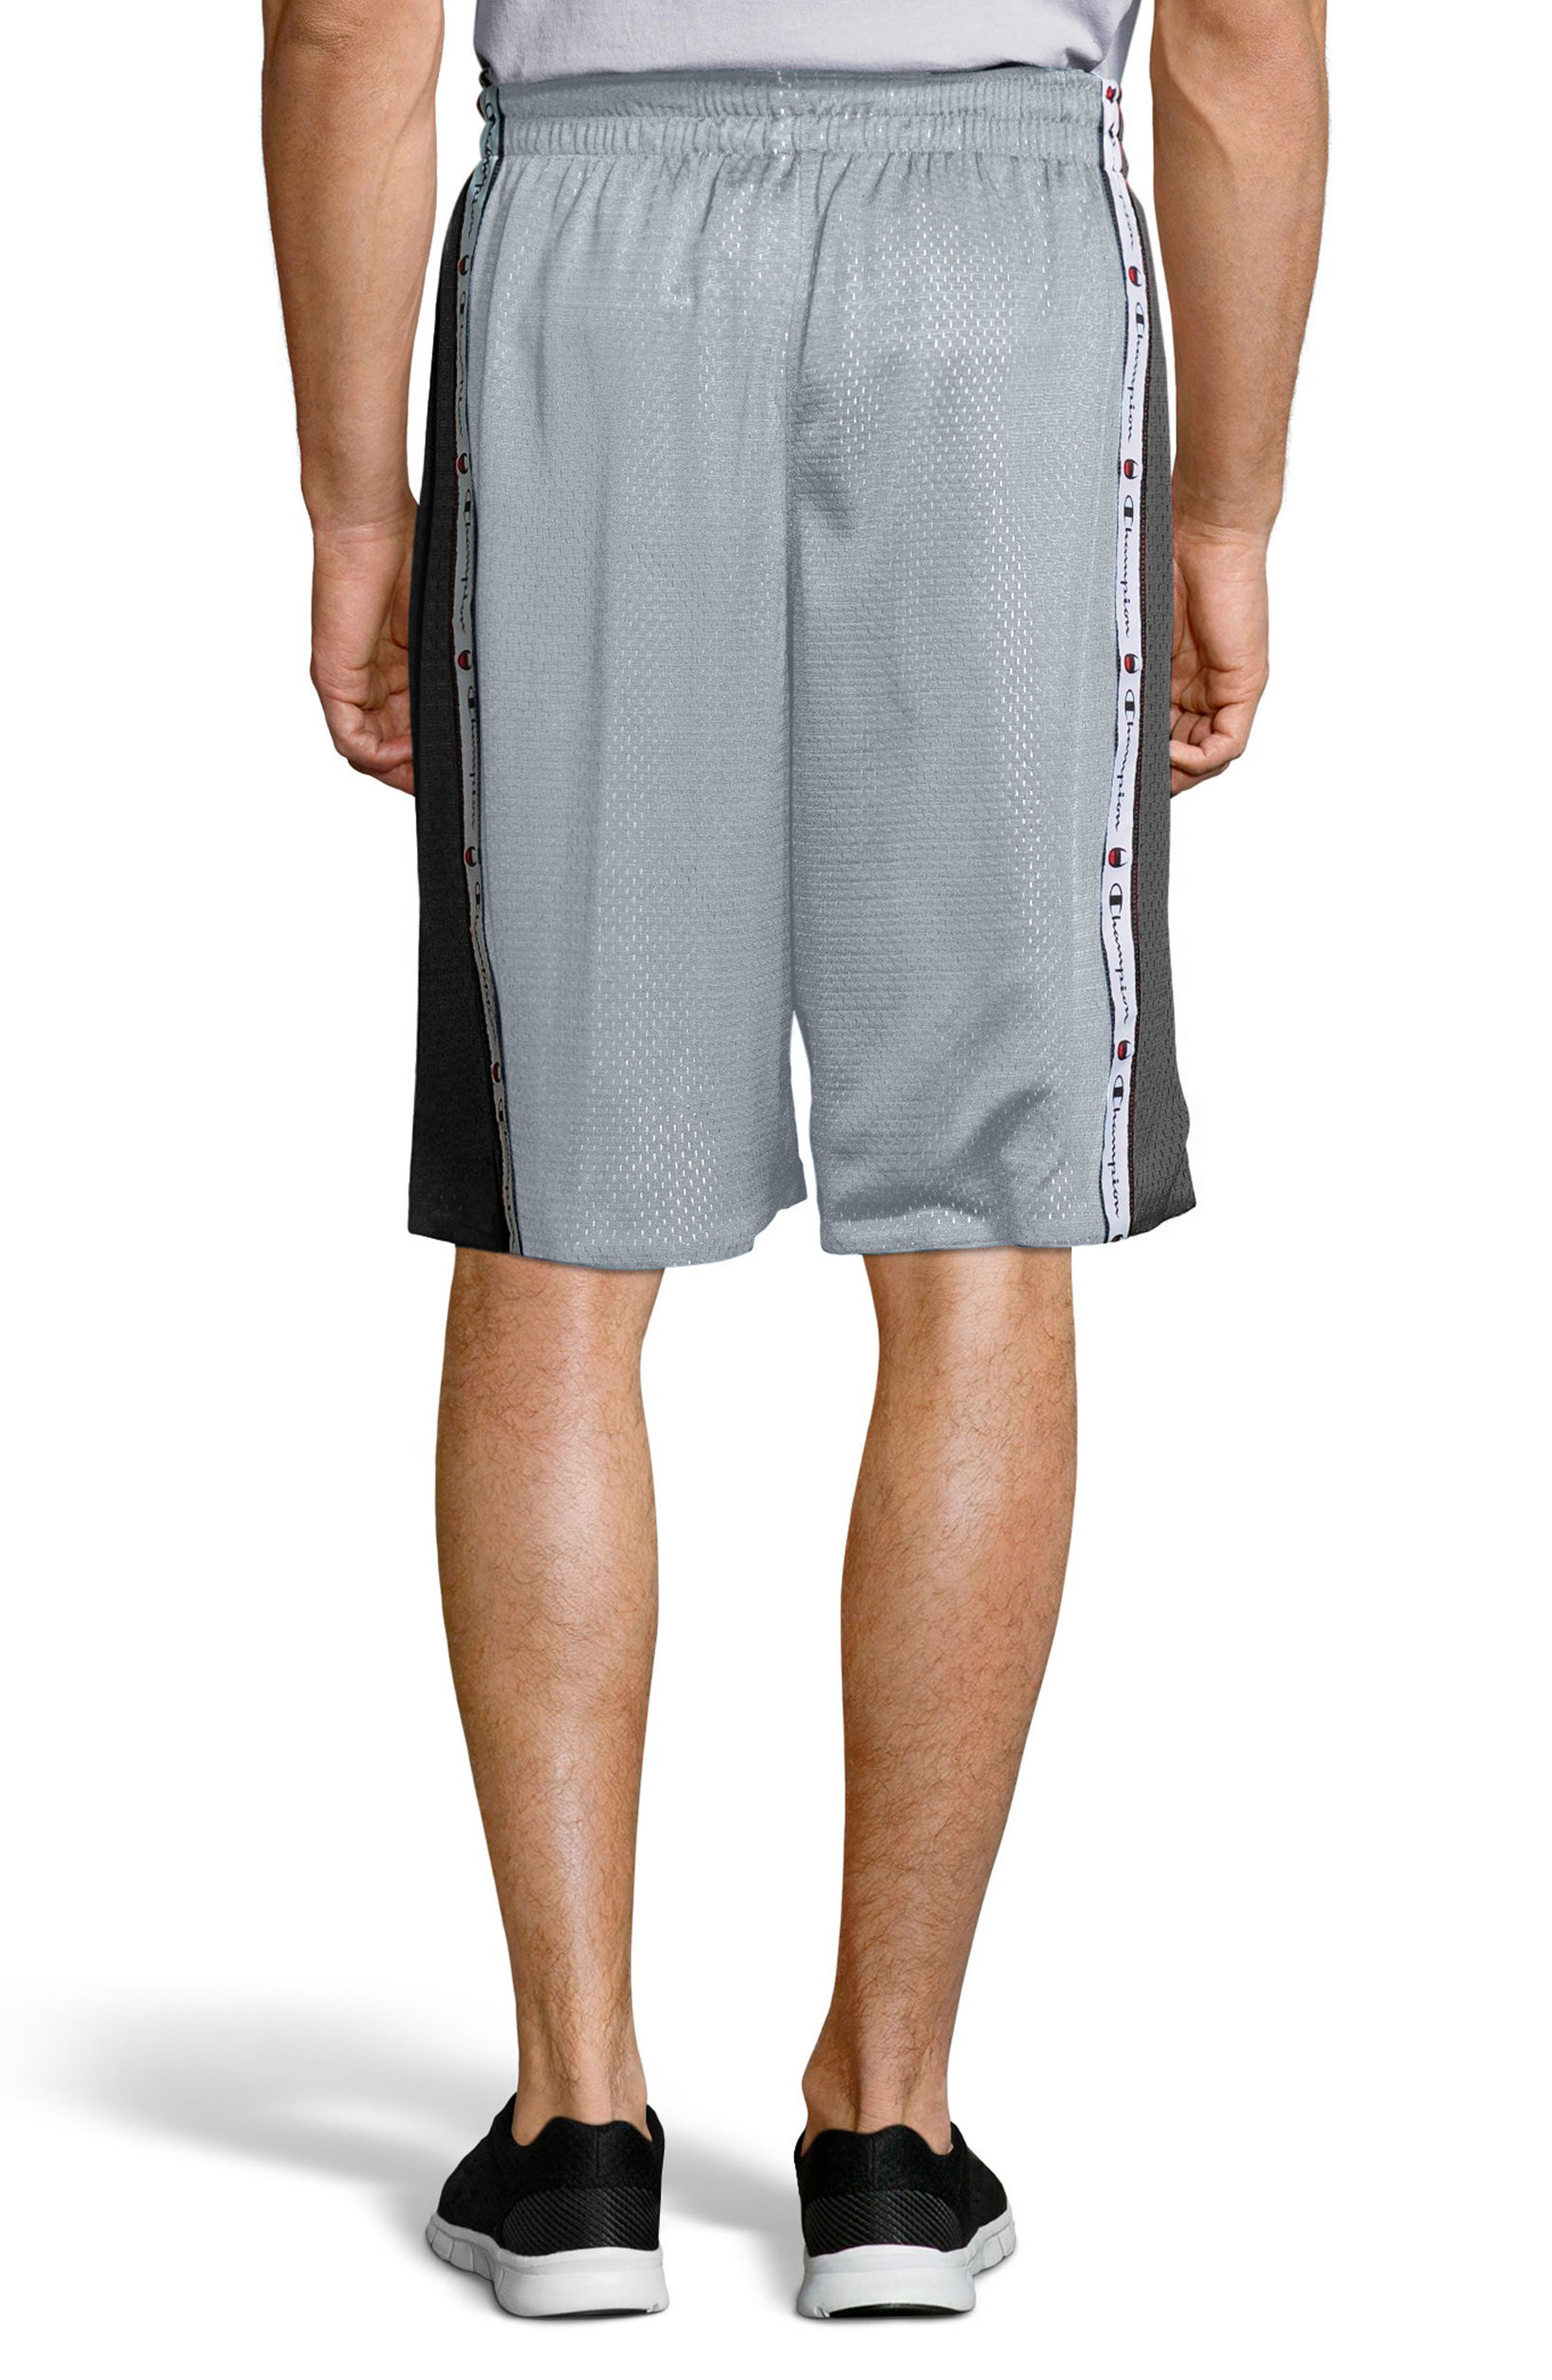 Reversible Mesh Shorts,                             Alternate thumbnail 2, color,                             Silverstone/ Black